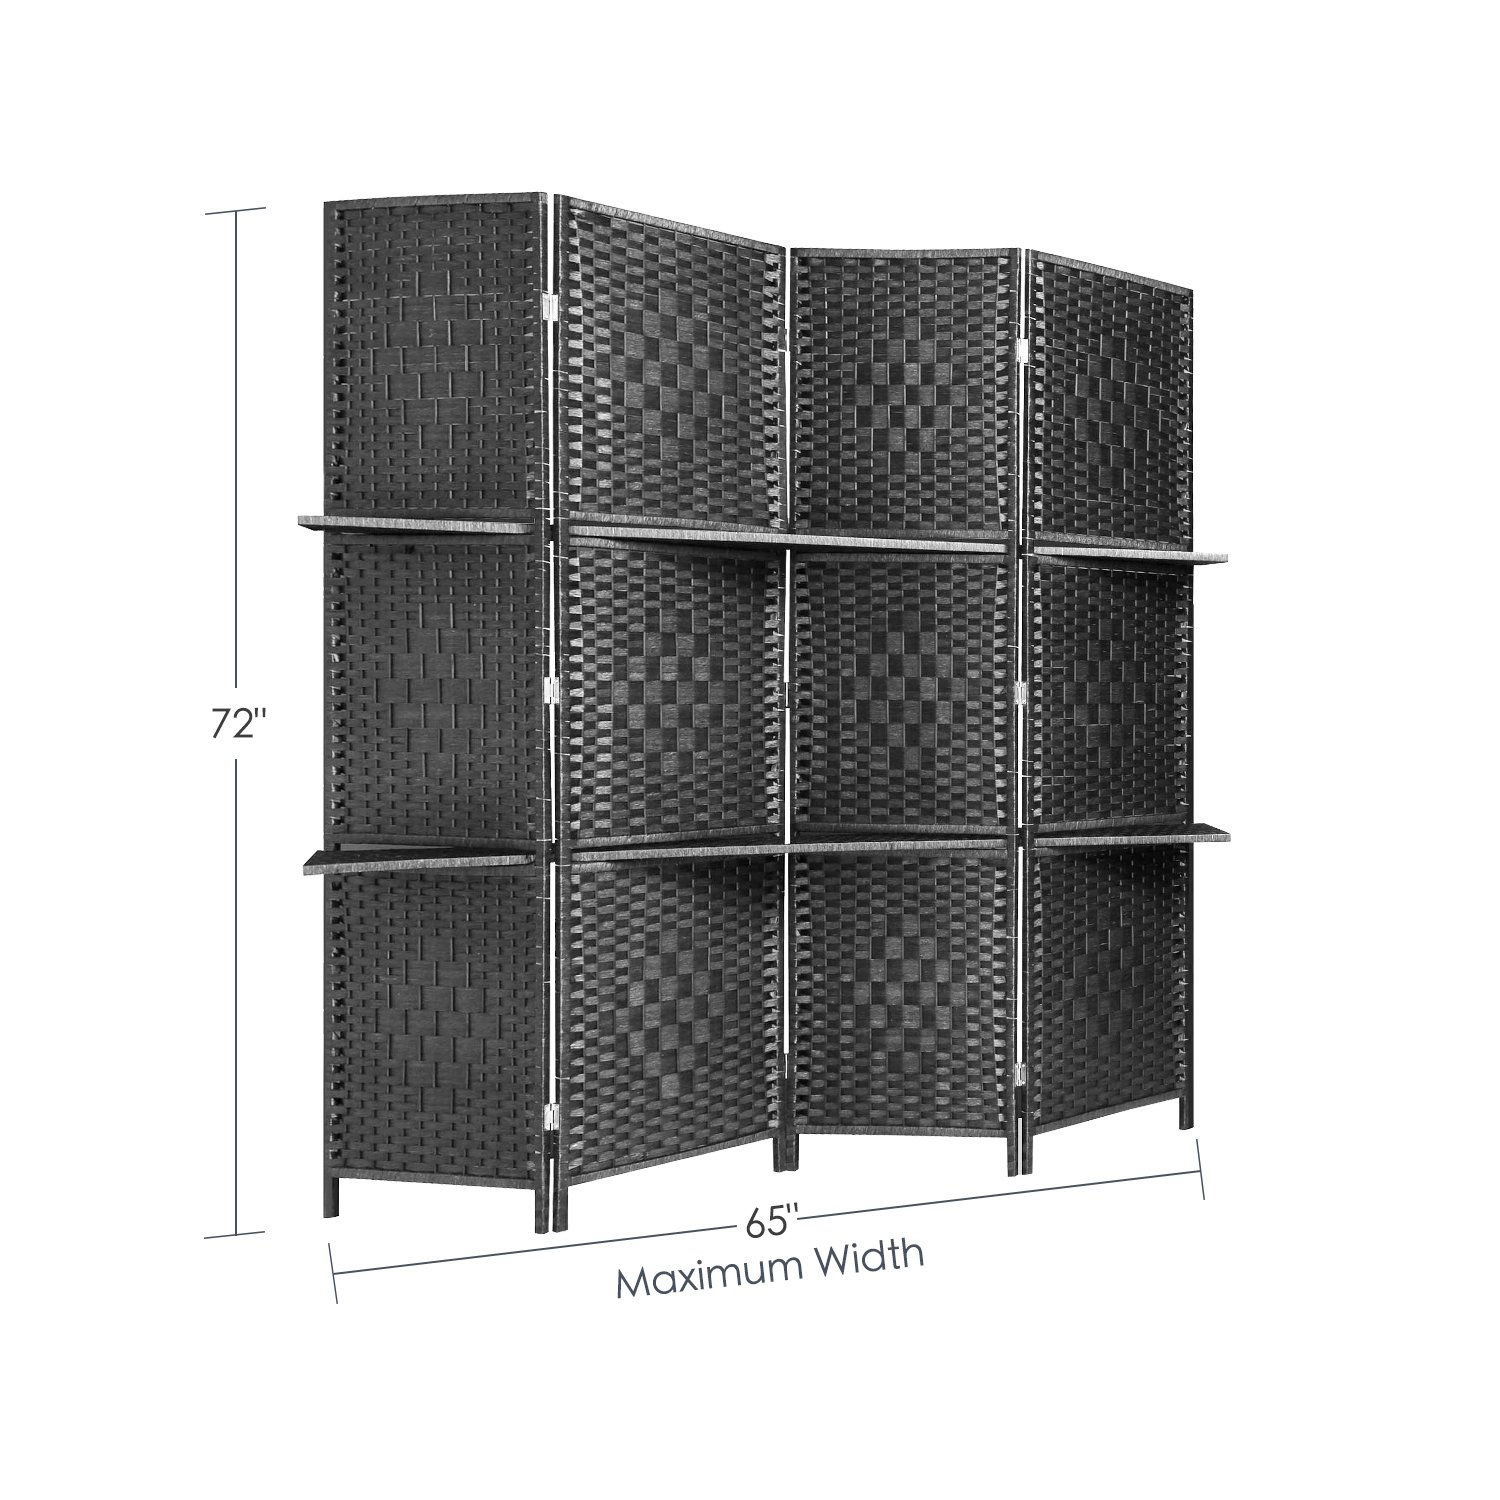 RHF 6 ft Tall (Extra Wide) Diamond Room Divider,Wall divider,Room dividers and folding privacy screens,Partition Wall, With 2 Display Shelves&room divider with shelves-DarkMocha-4 Panels 2 Shelves by Rose Home Fashion (Image #5)